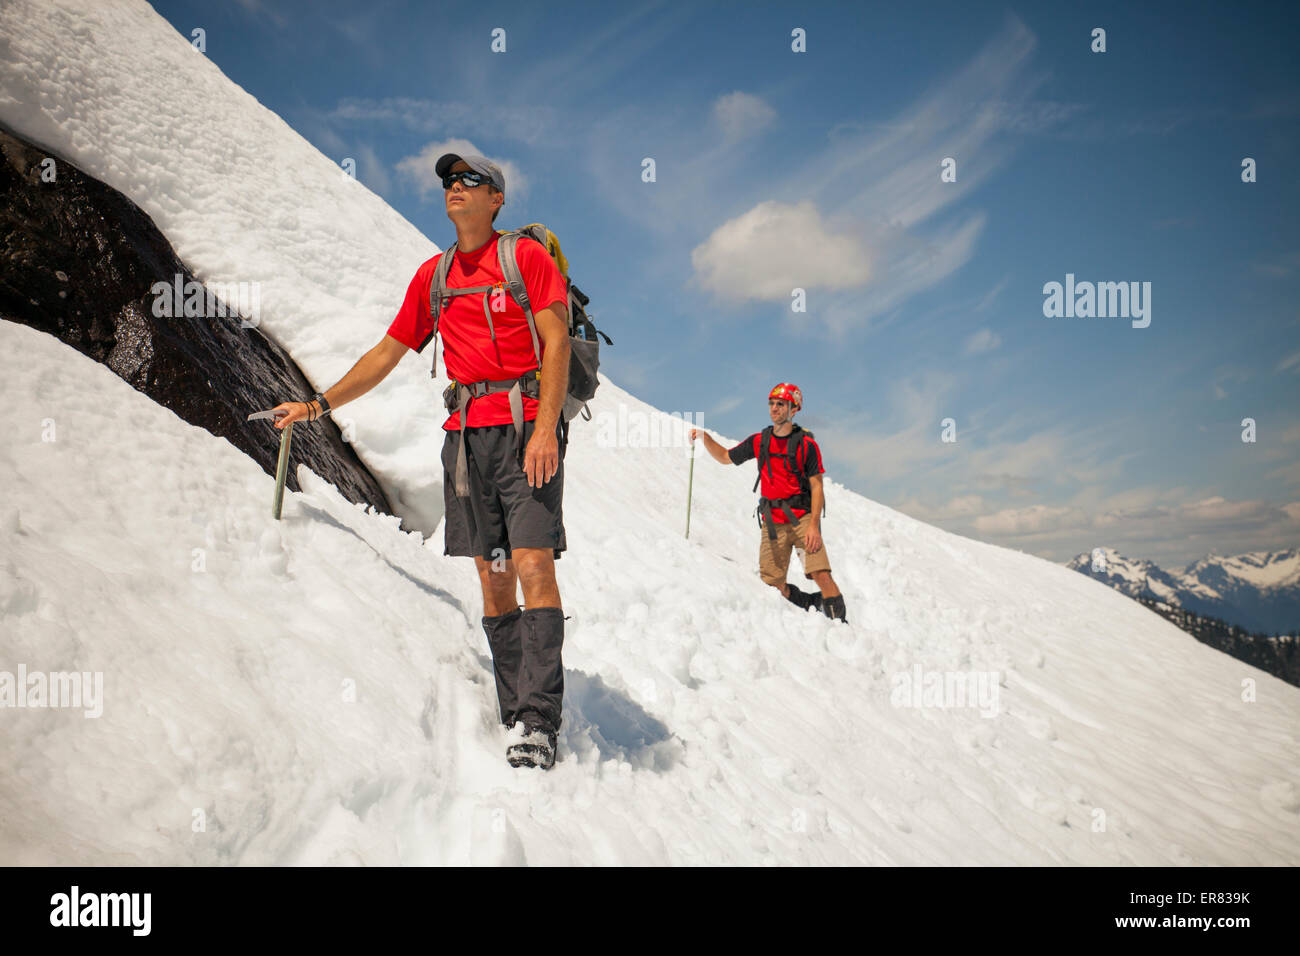 Two climber cross a snowfield high in the mountains. - Stock Image